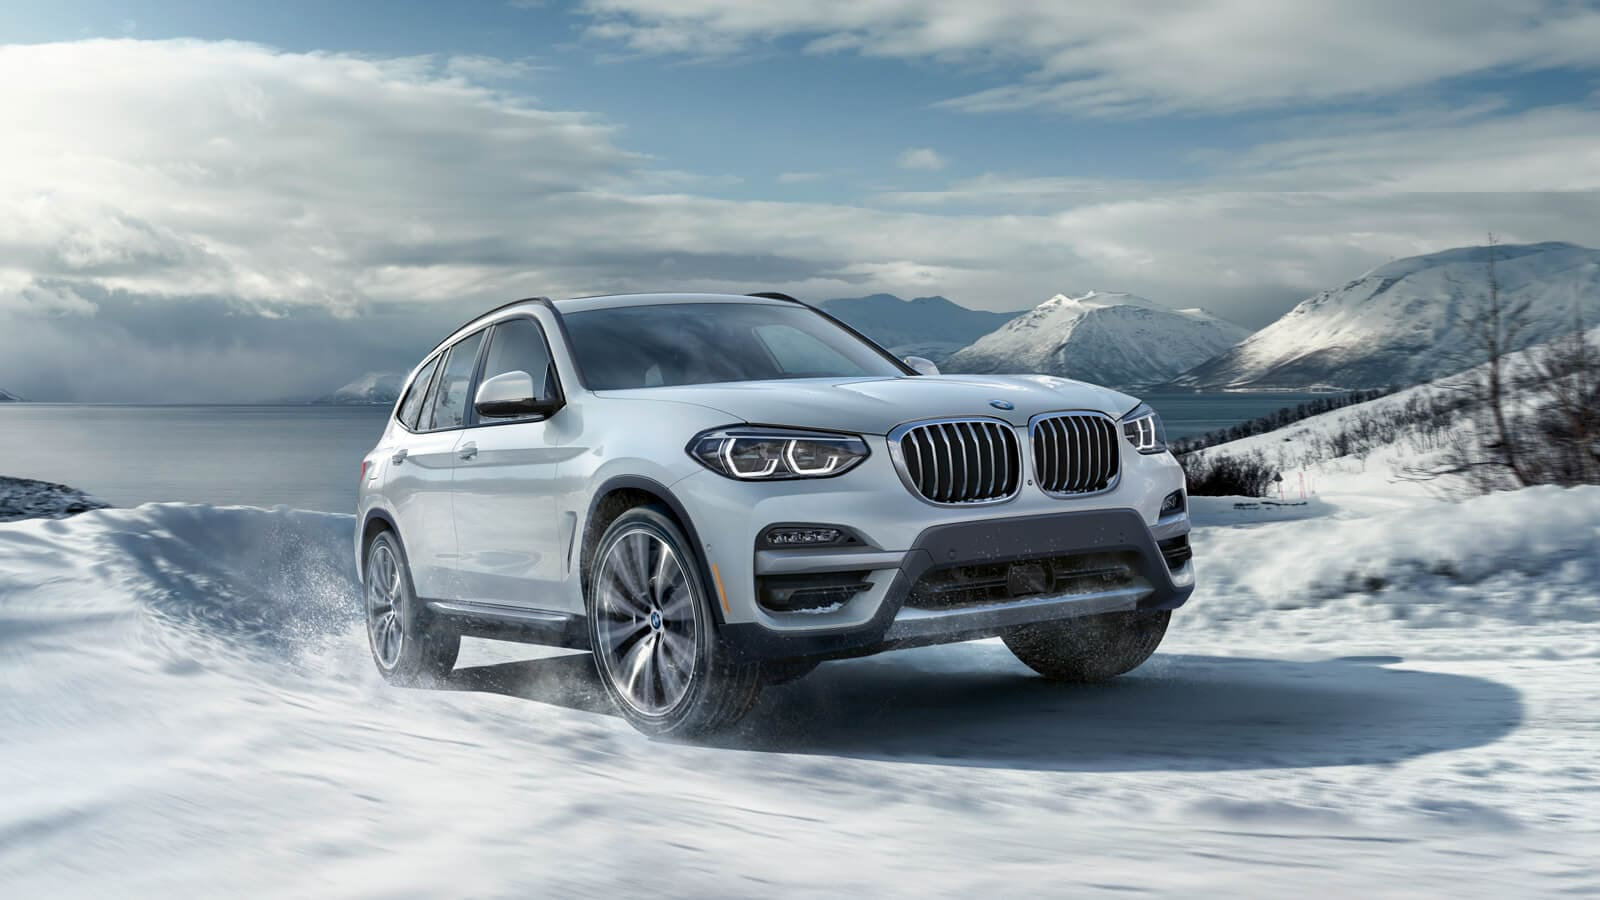 2020 BMW X3 Lease in Plano, TX